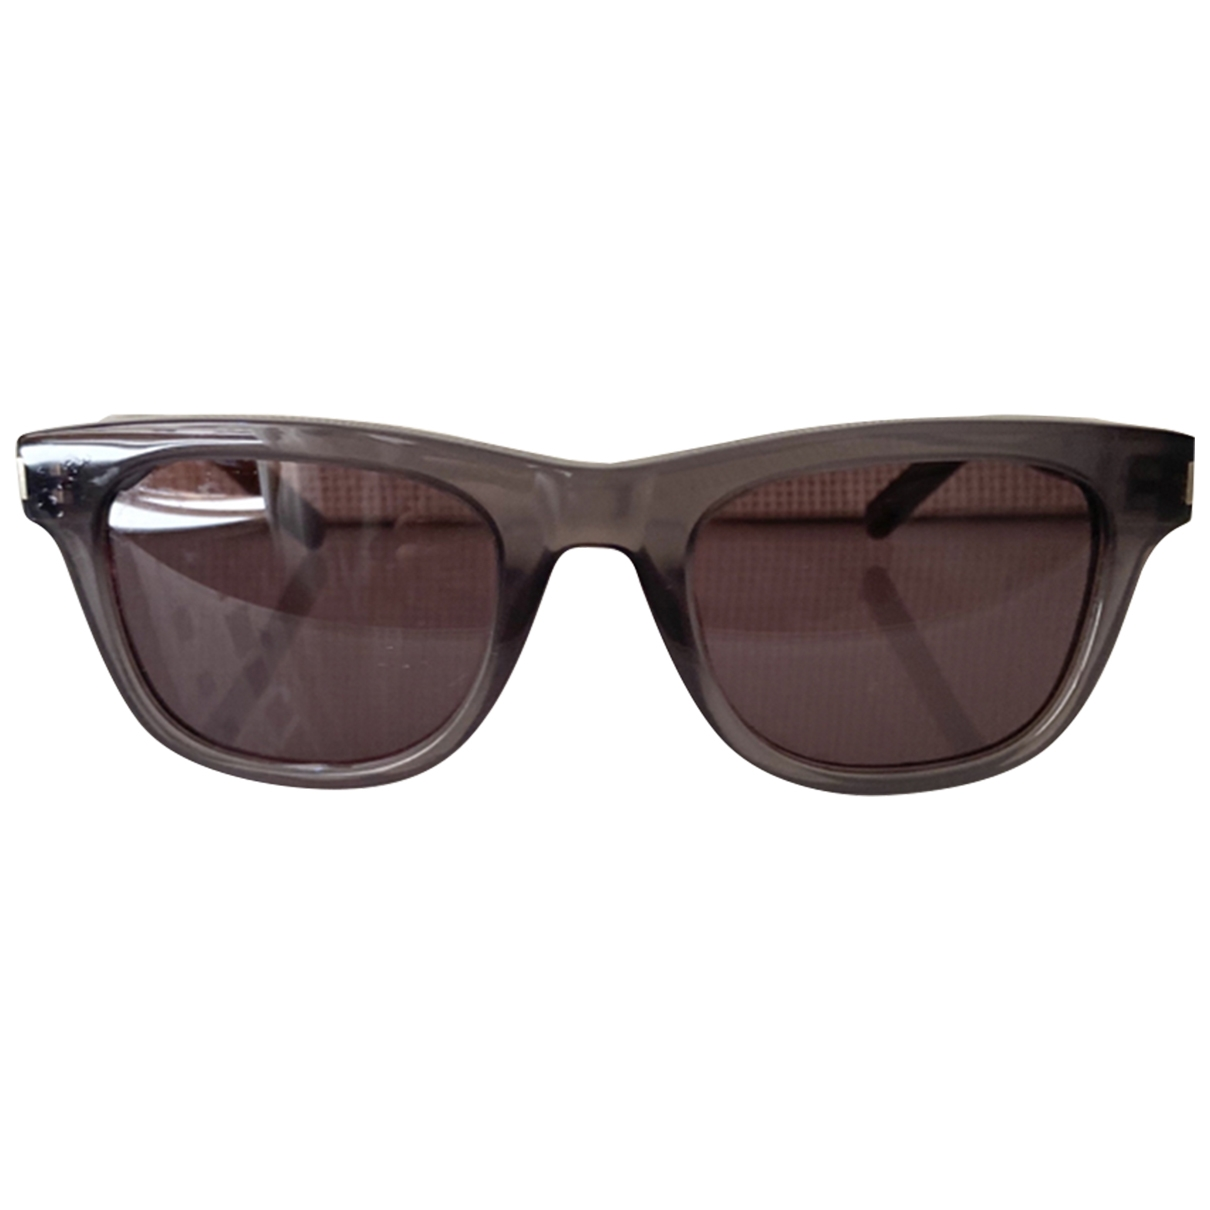 Saint Laurent \N Grey Sunglasses for Women \N